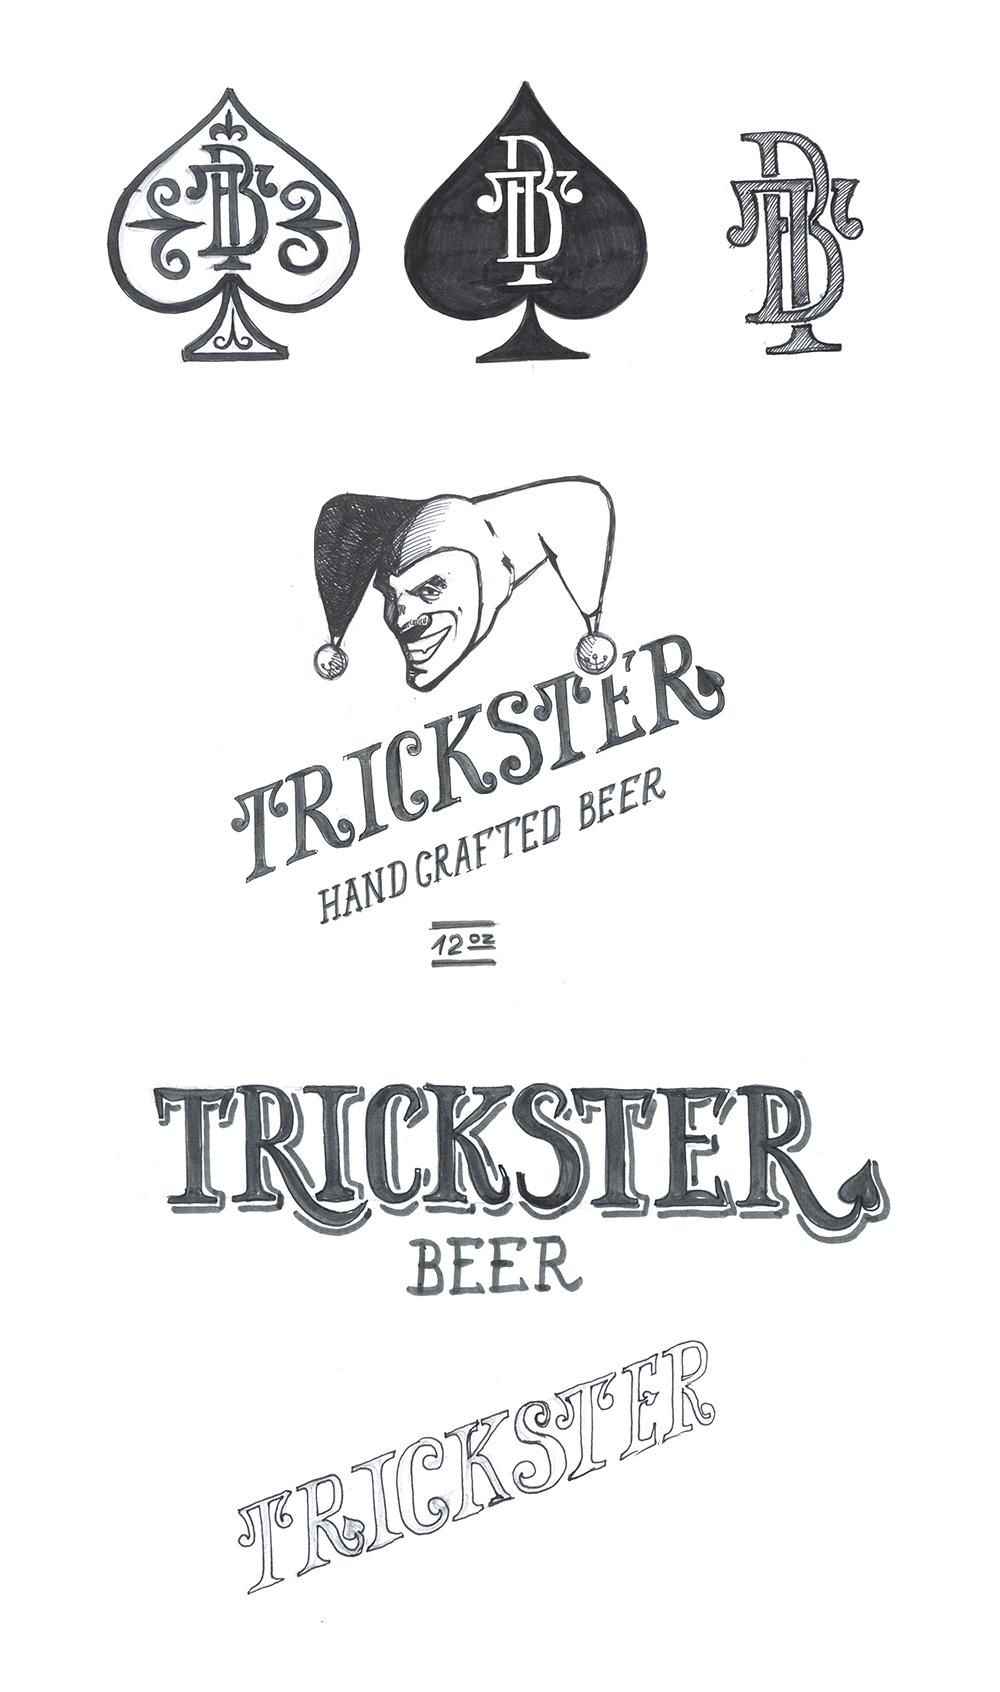 Trickster beer - image 1 - student project